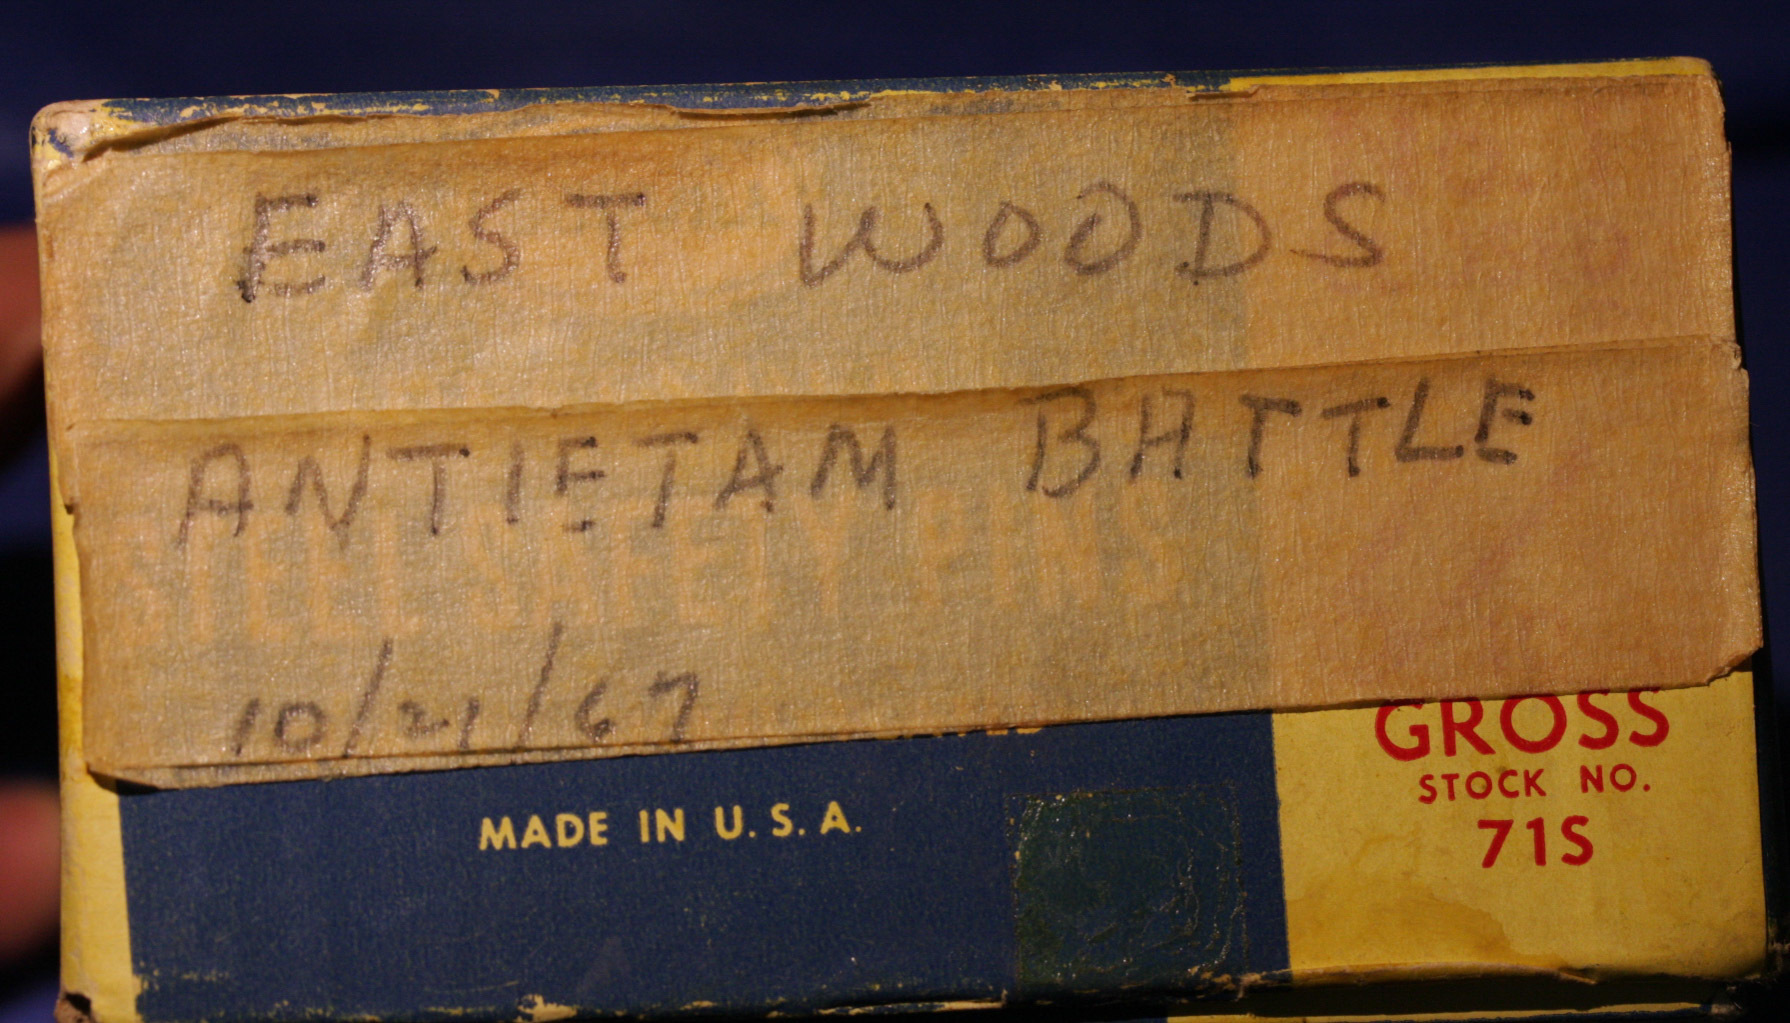 JUST ADDED ON 3/30 - ANTIETAM - THE EAST WOODS  - Pieces from Cartridge Box Tins found on October 21, 1967 - From an Old Relic Hunter's Boxed / Identified Collection